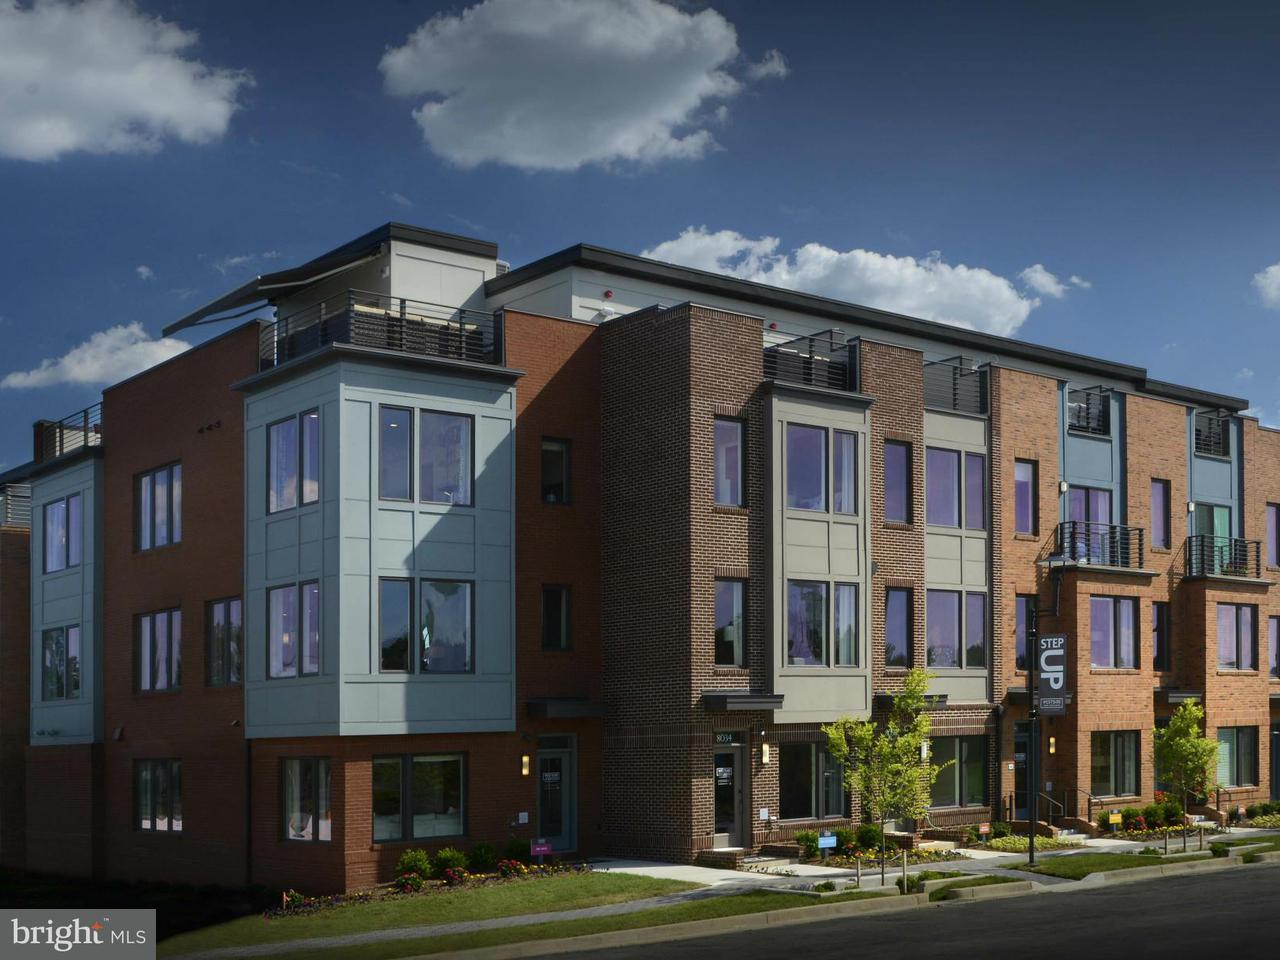 Townhouse for Sale at 16658 CRABBS BRANCH WAY #DAVIS 16658 CRABBS BRANCH WAY #DAVIS Rockville, Maryland 20855 United States